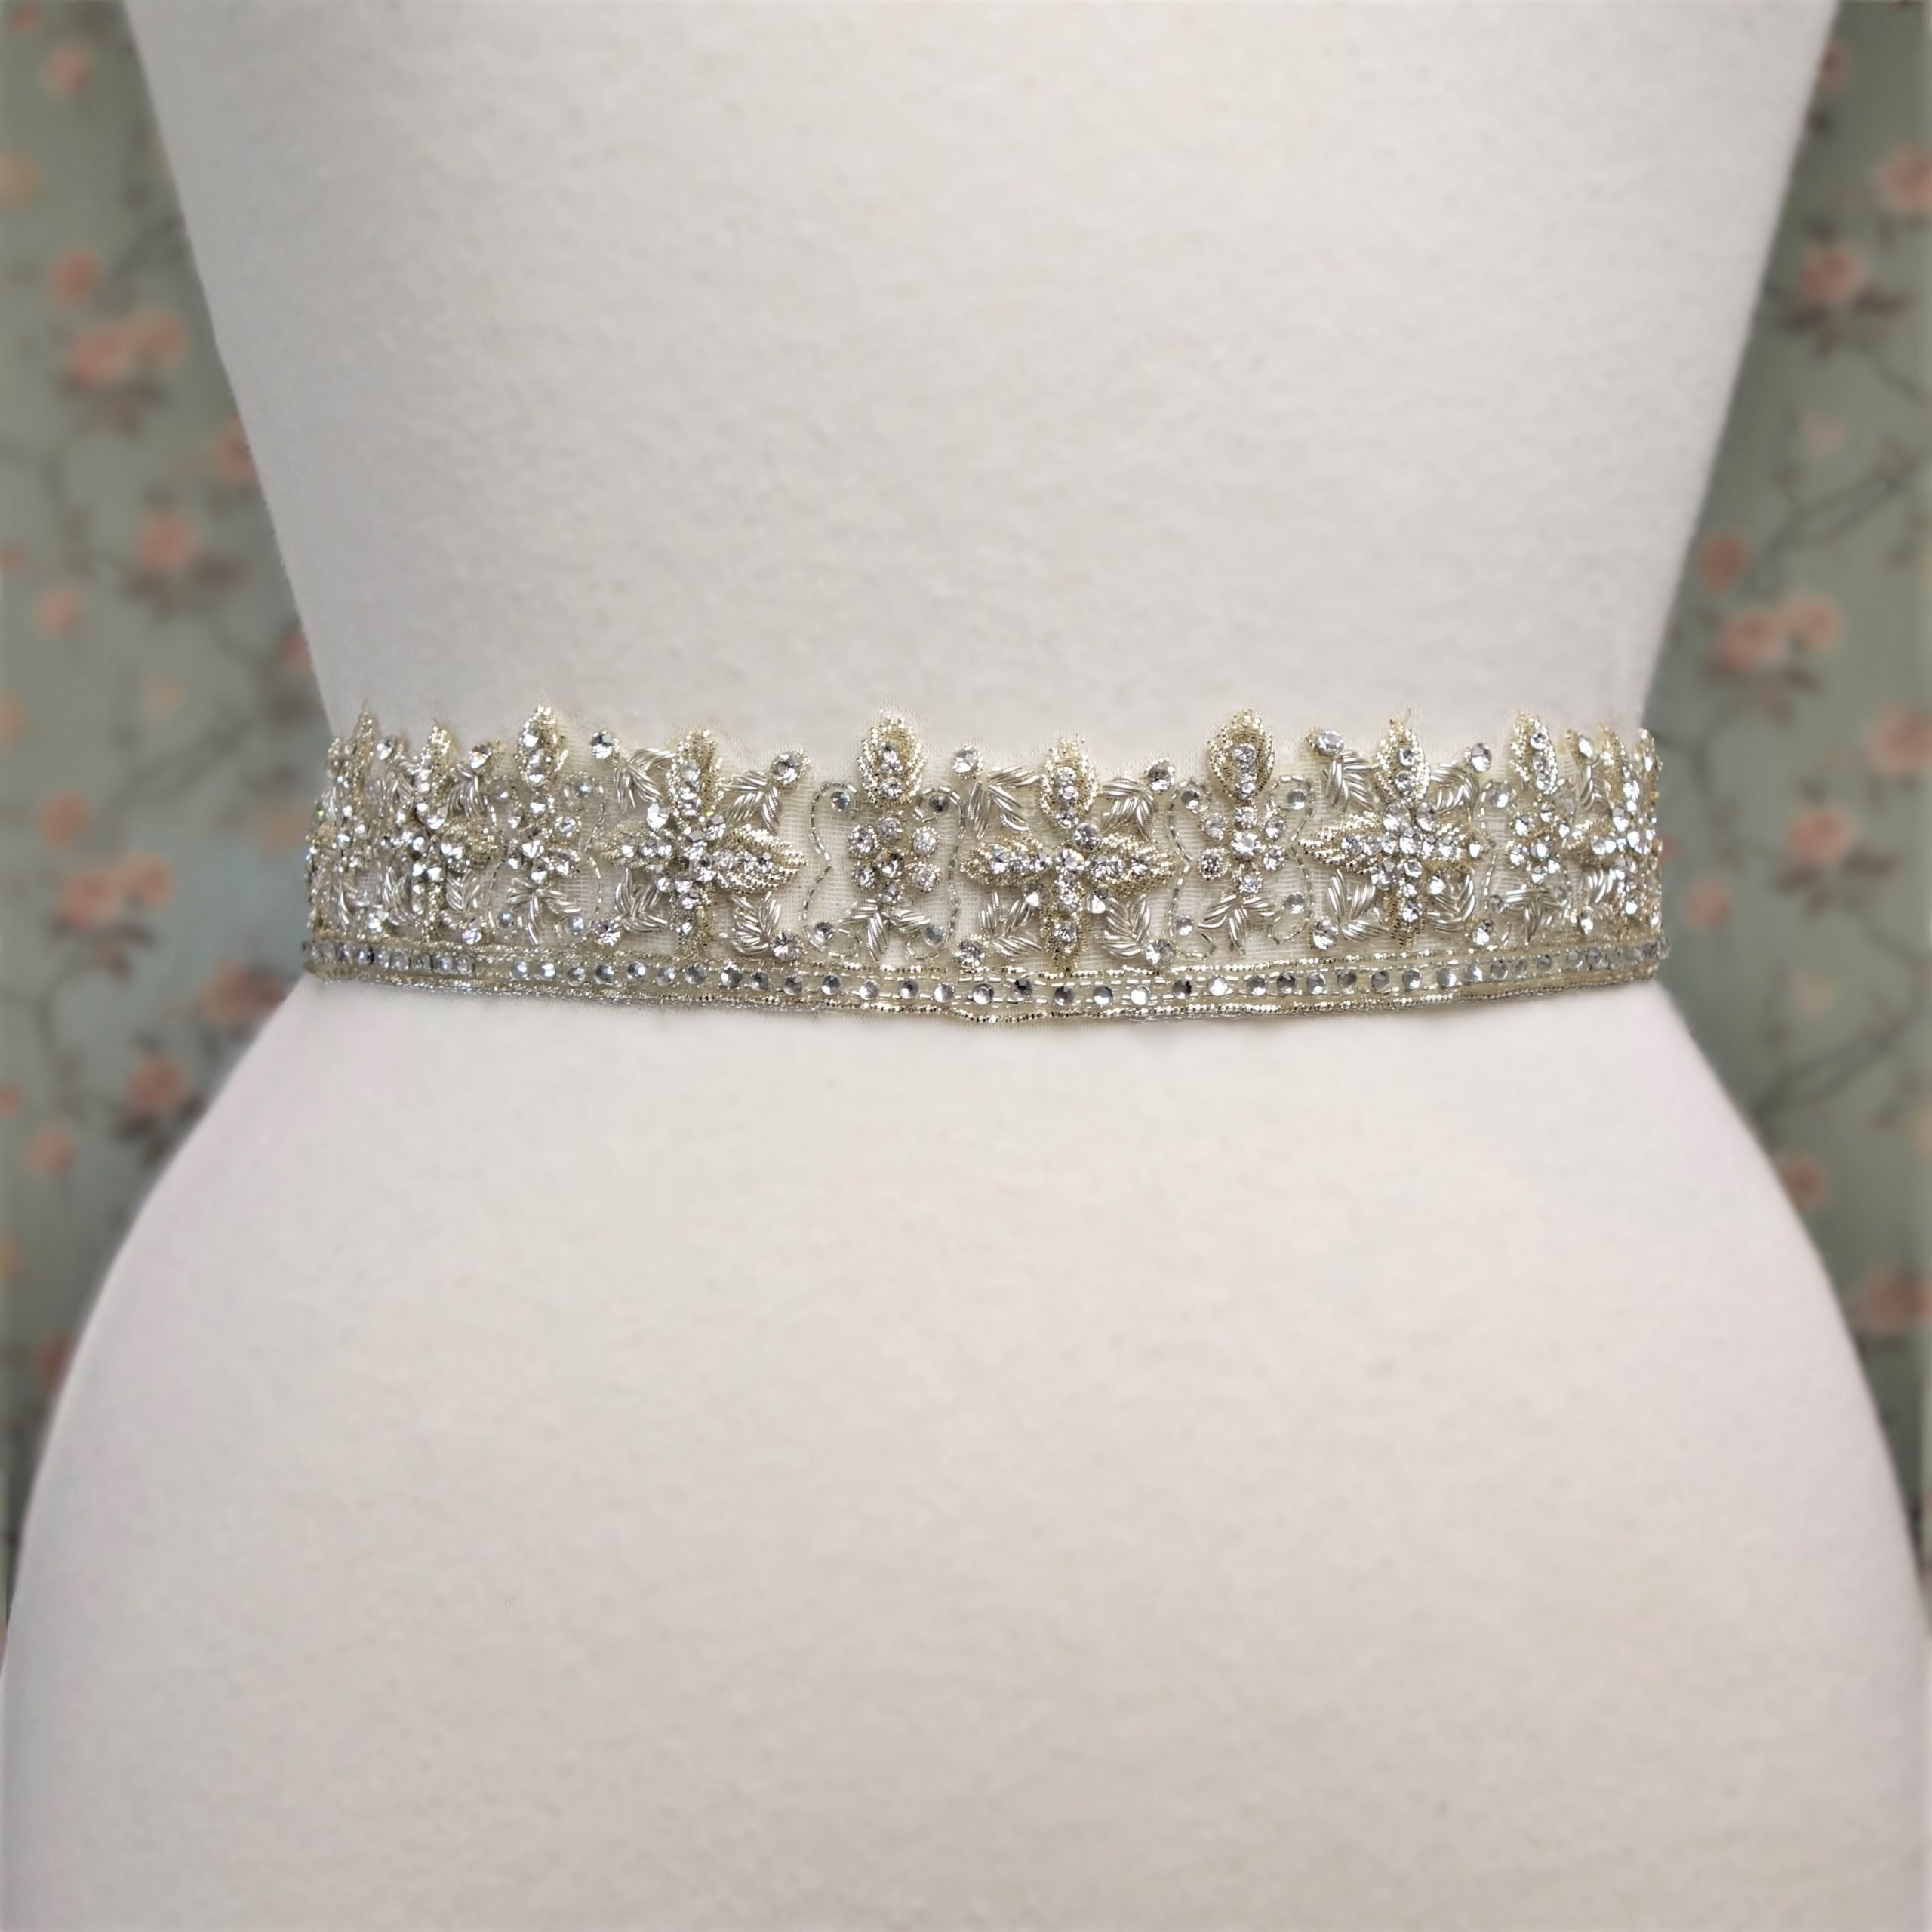 Antiqued Silver Bridal Belt